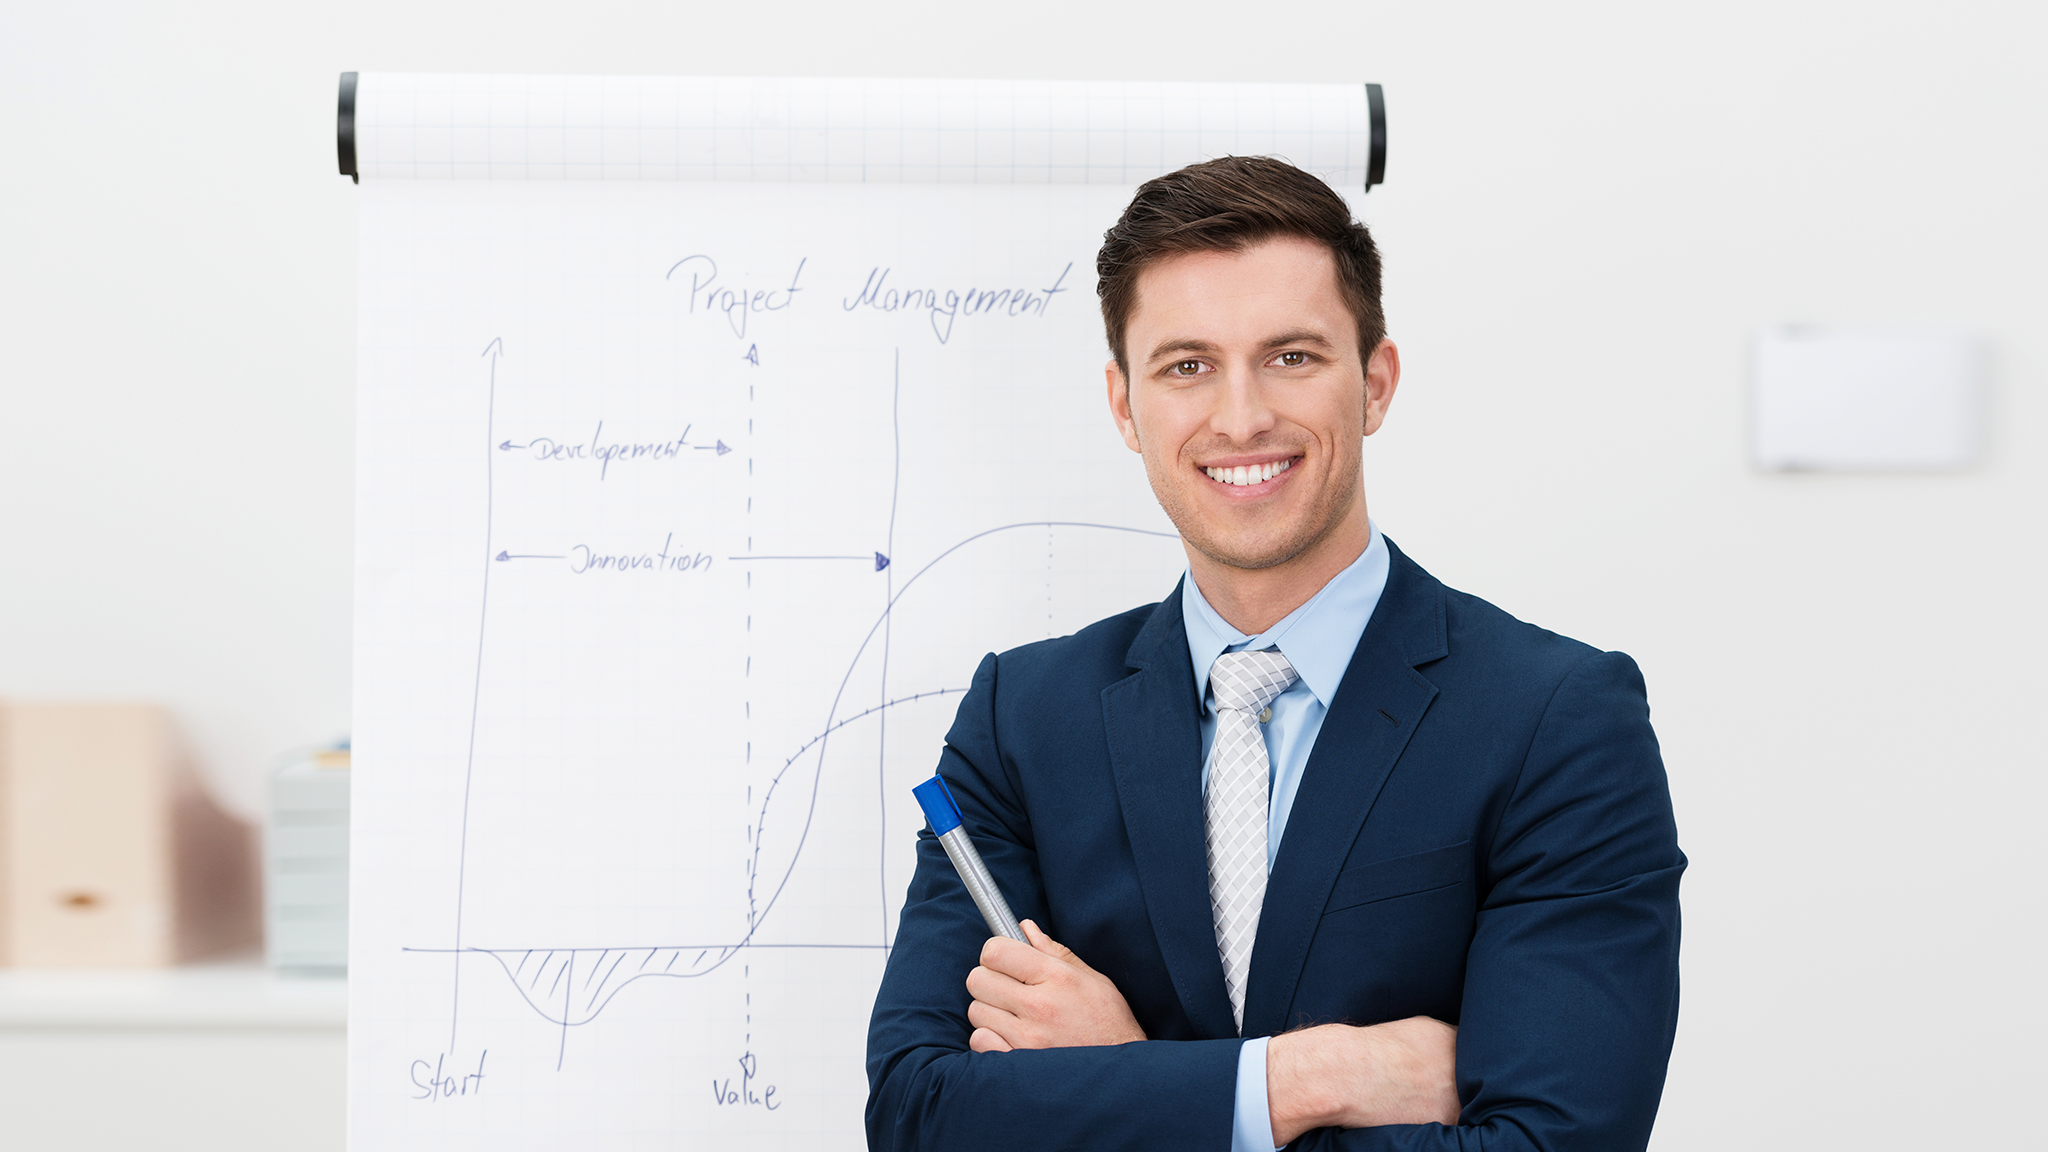 Project Management Certification Project Management Course